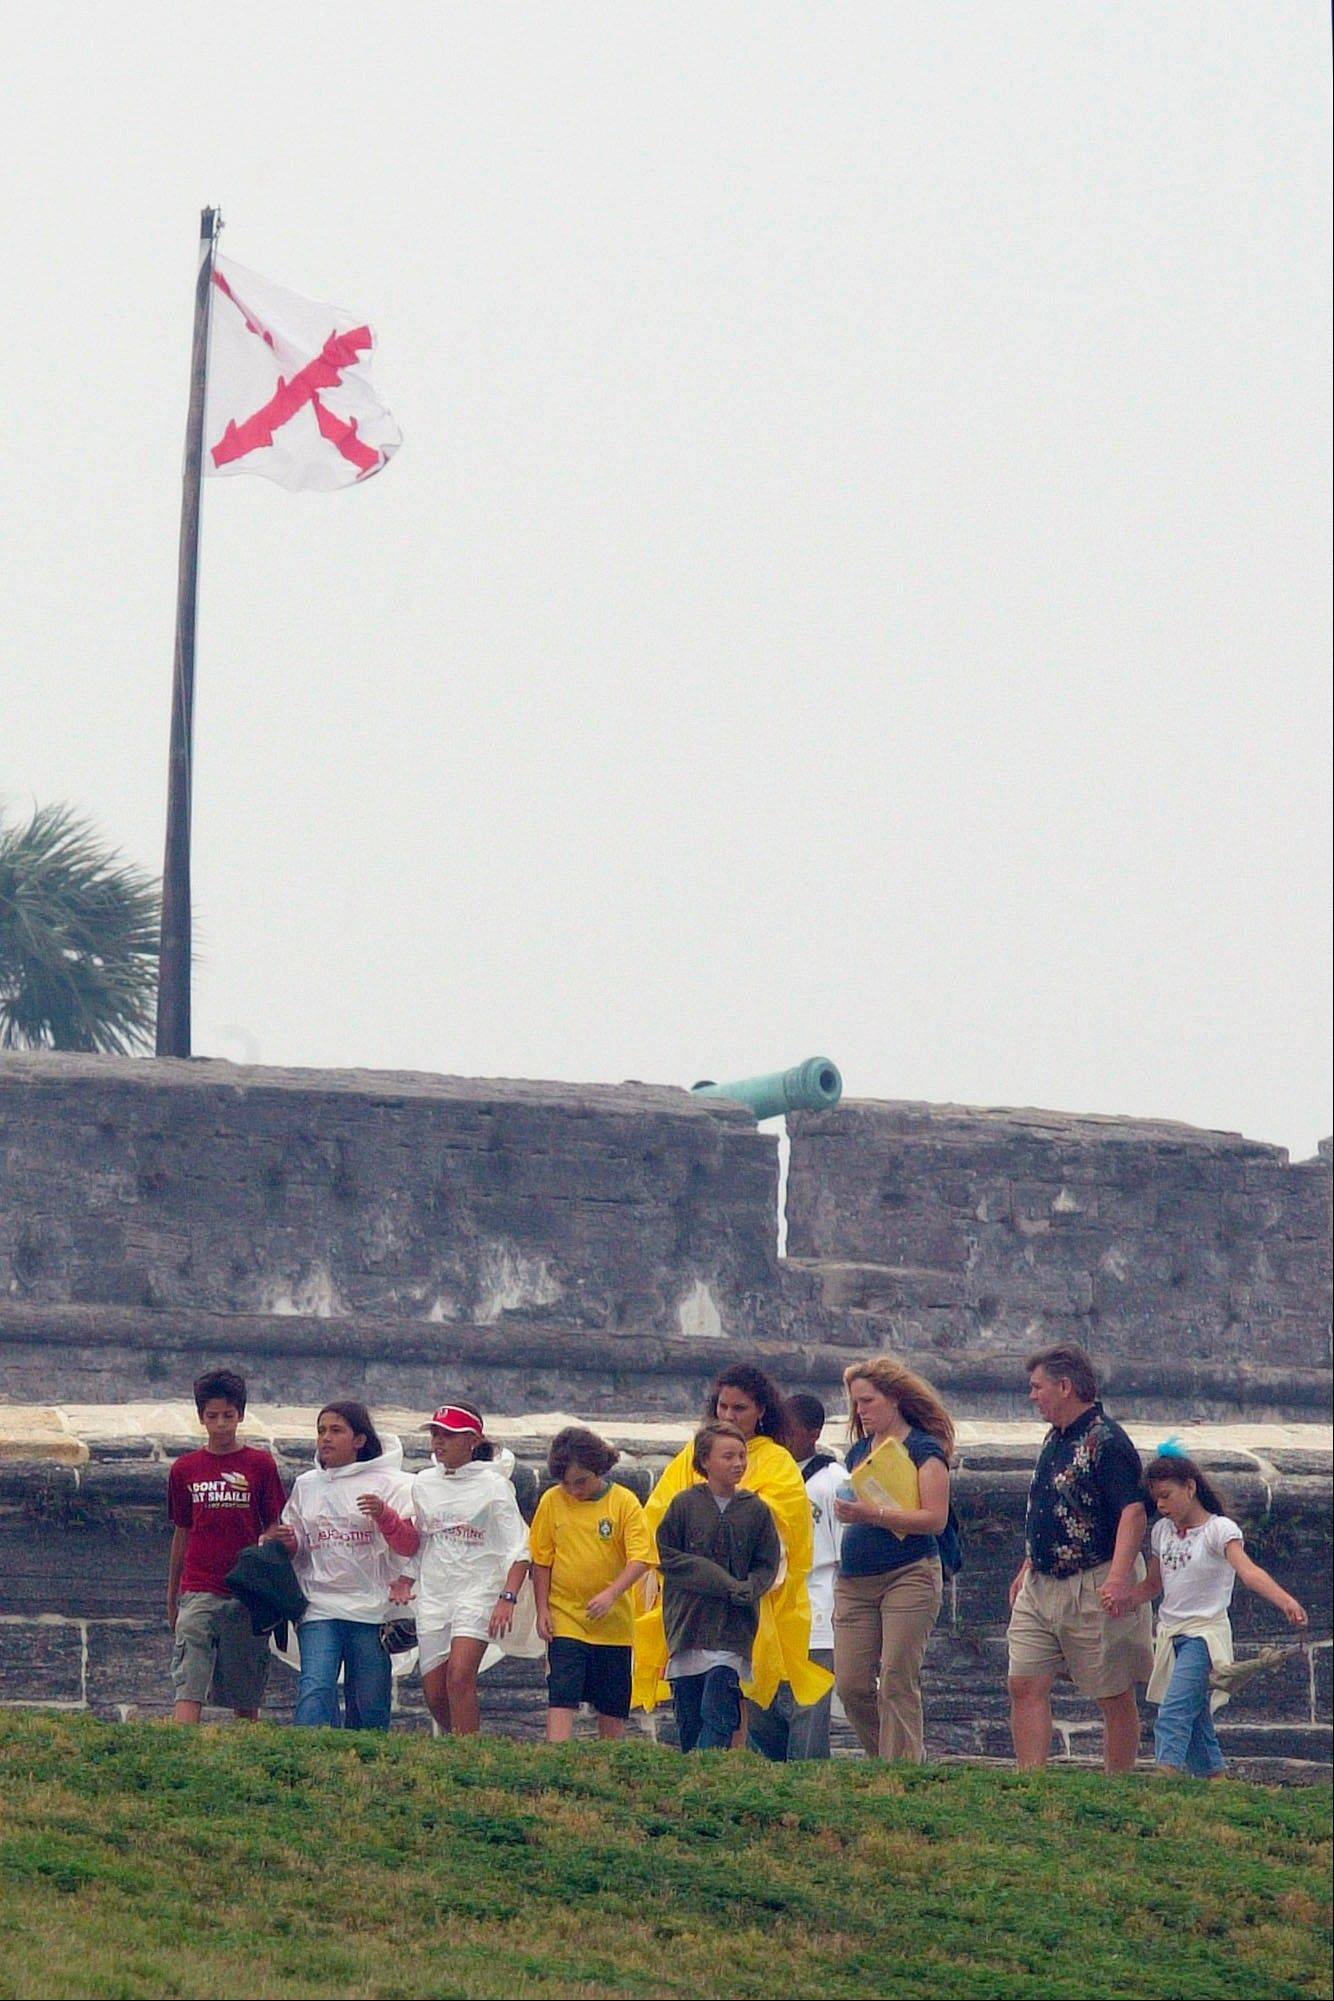 The Spanish built the Castillo de San Marcos, an imposing fort constructed of the stone coquina between 1672 and 1696 in St. Augustine, Fla. This year Florida is marking the 500th Anniversary since the explorer Ponce de Leon landed in Florida in April 1513.